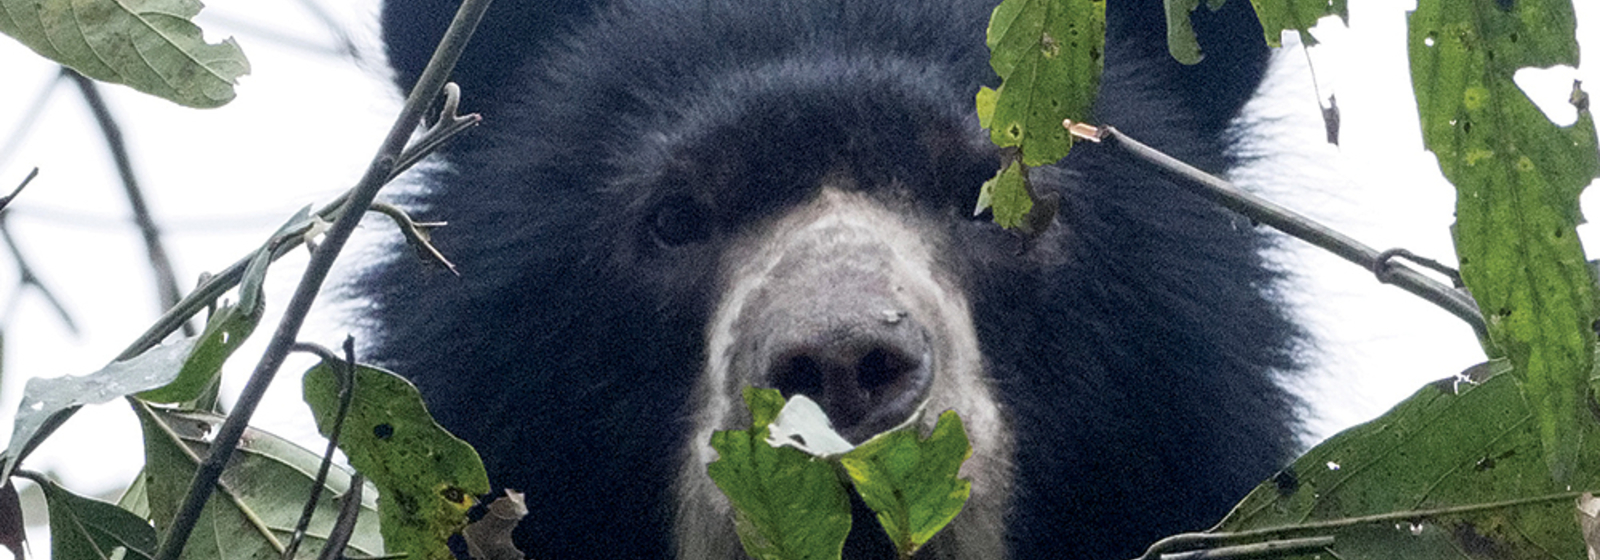 Support Andean bear conservation